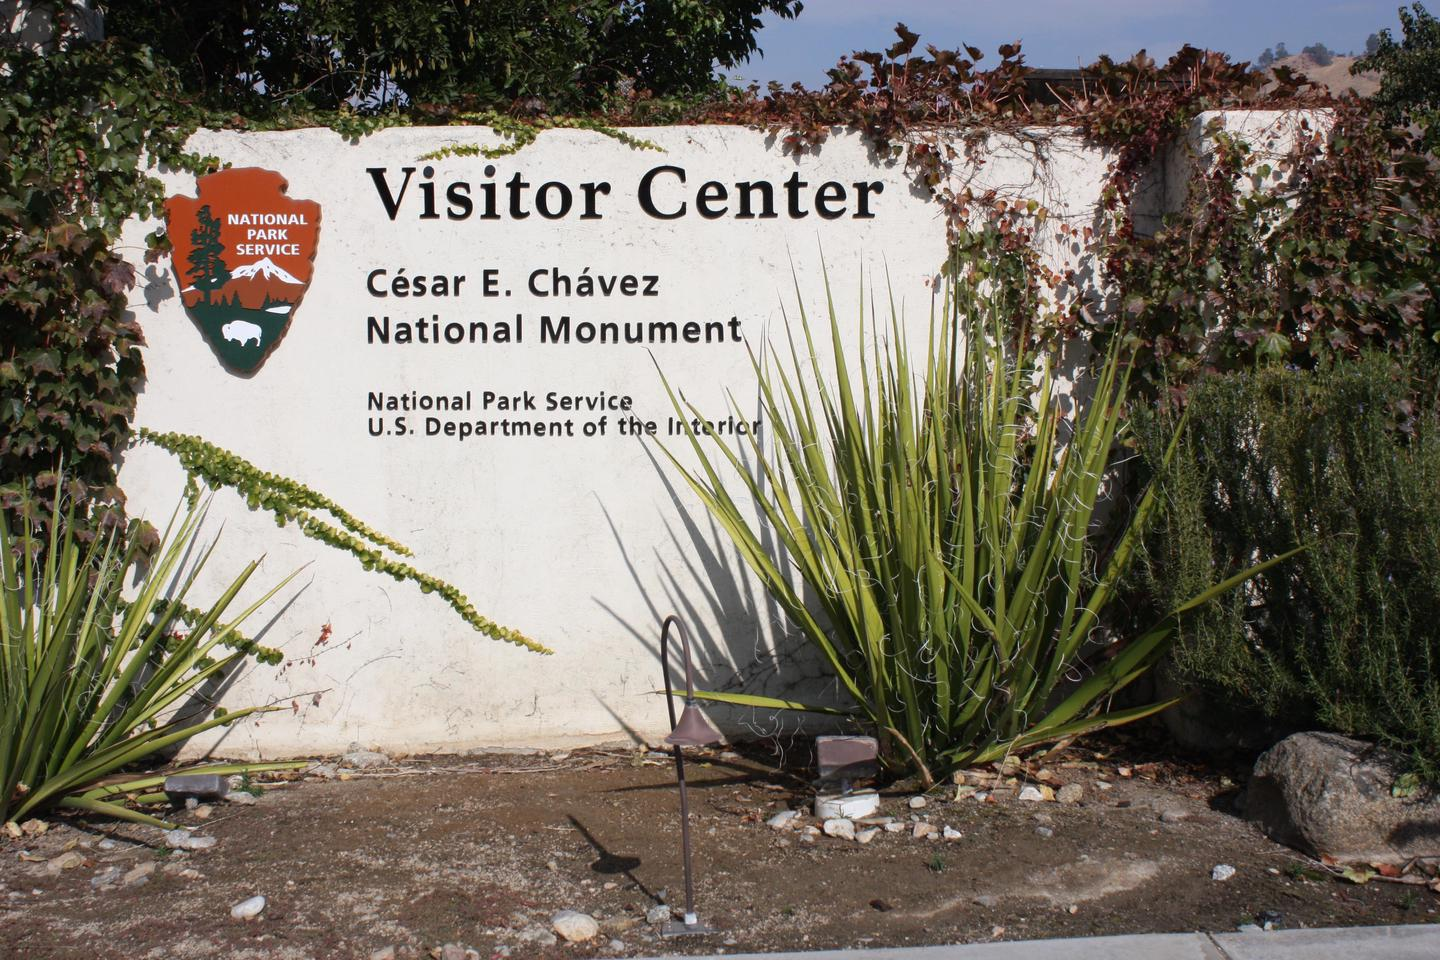 Visitor Center Exterior SIgnThe sign outside the Visitor Center.